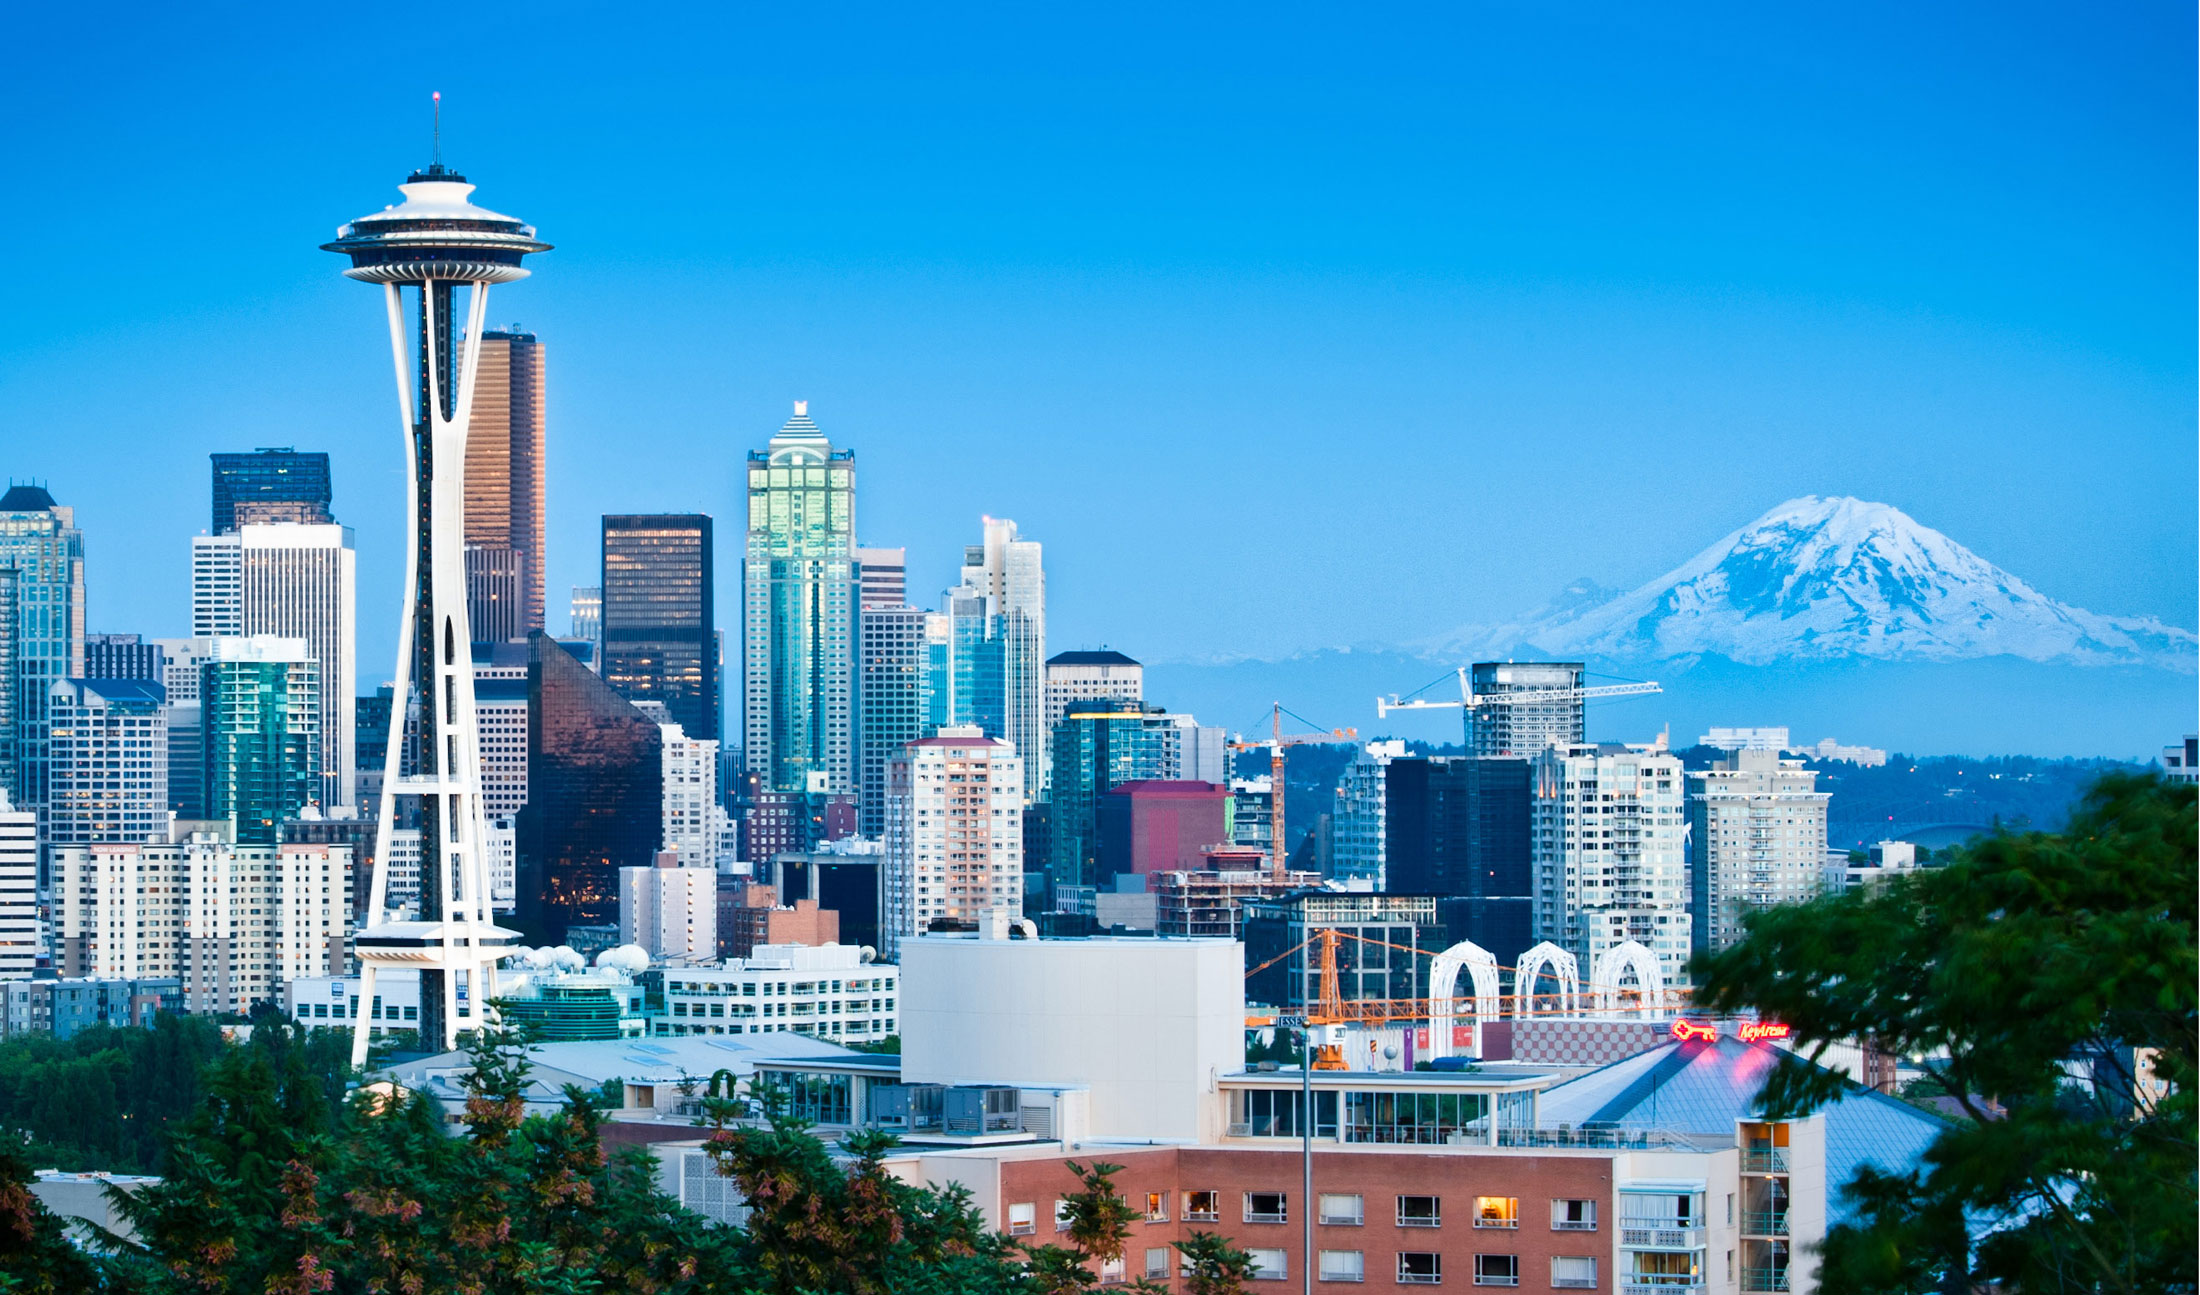 Amazon, Microsoft and T-Mobile are all based in or near Seattle. Their presence has played a significant role in Seattle becoming the US' fastest-growing big city in the last decade